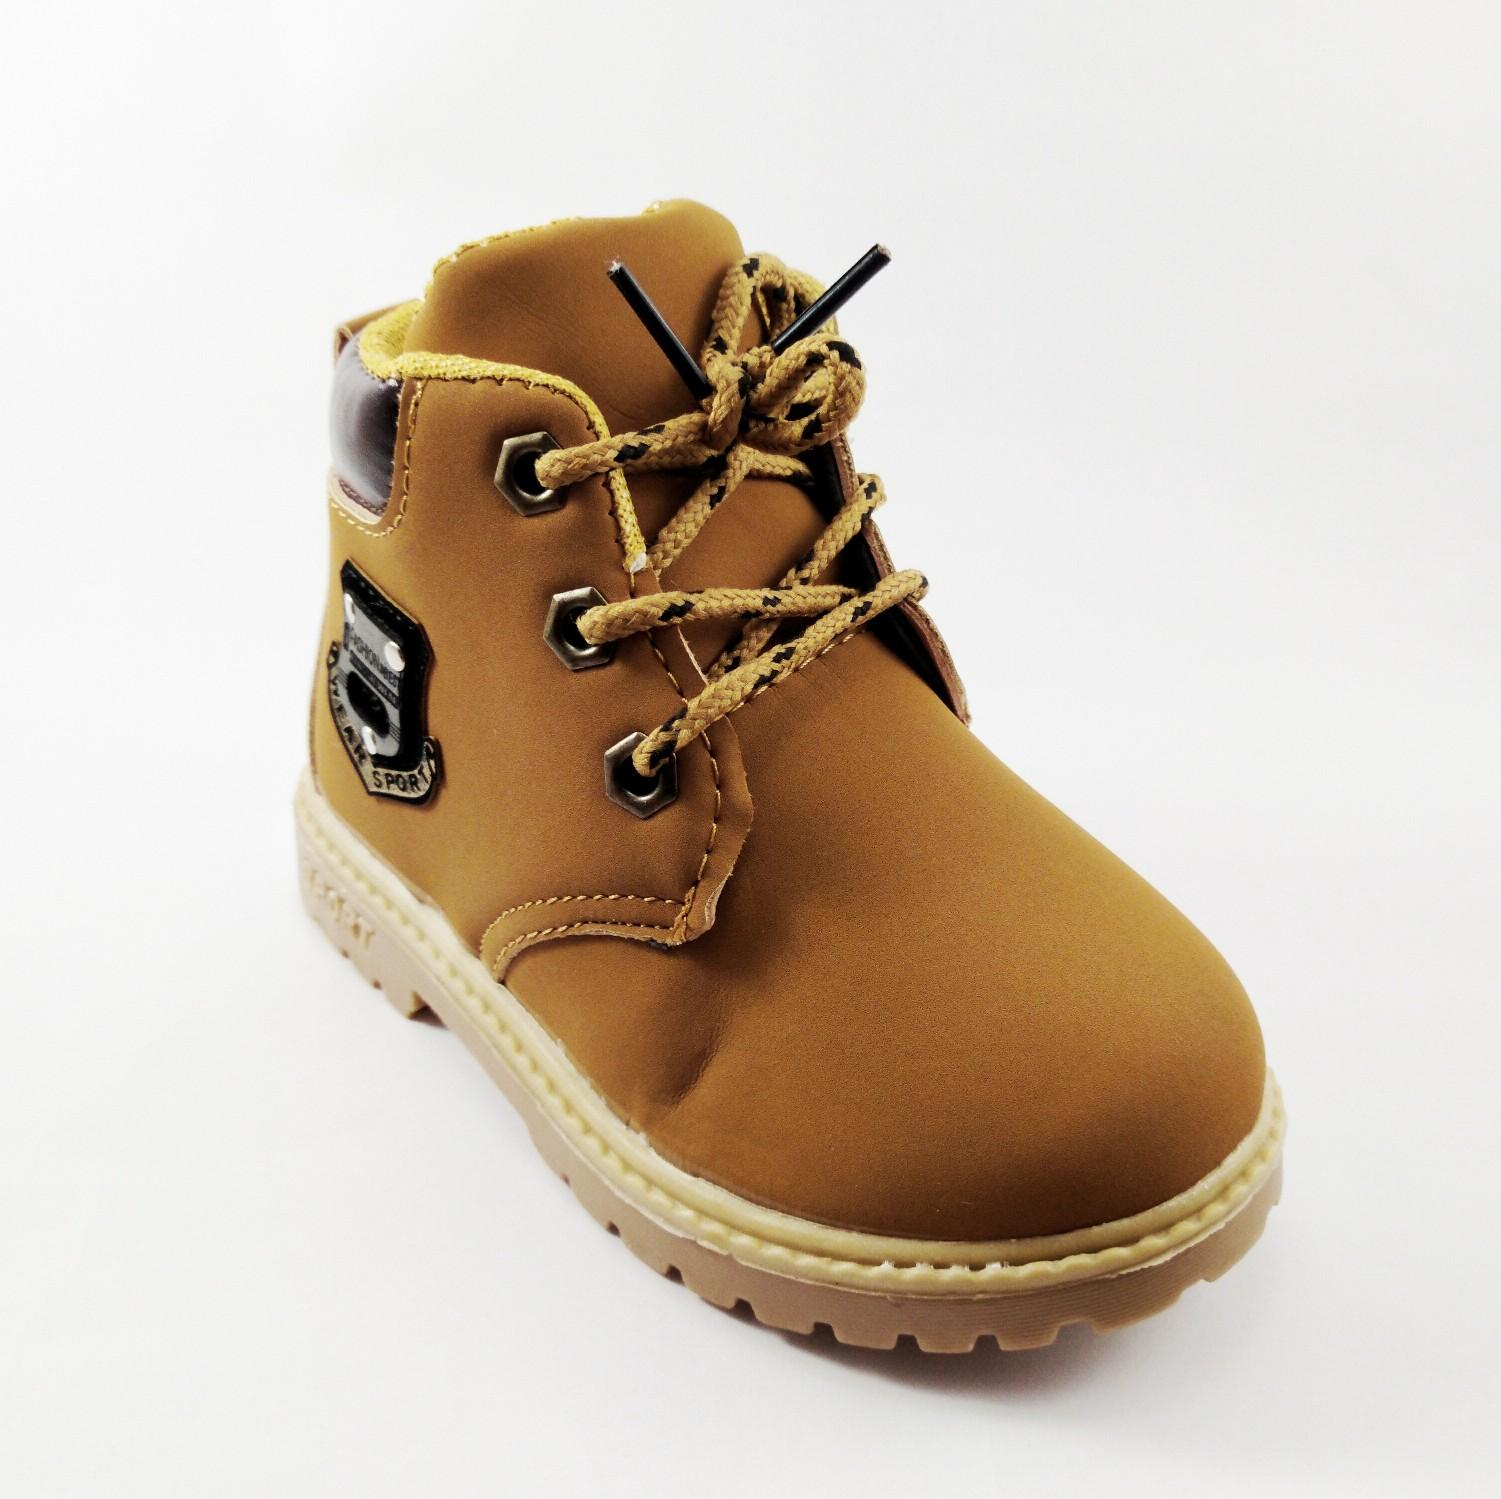 Boys Shoes for sale Shoes for Boys online brands prices & reviews